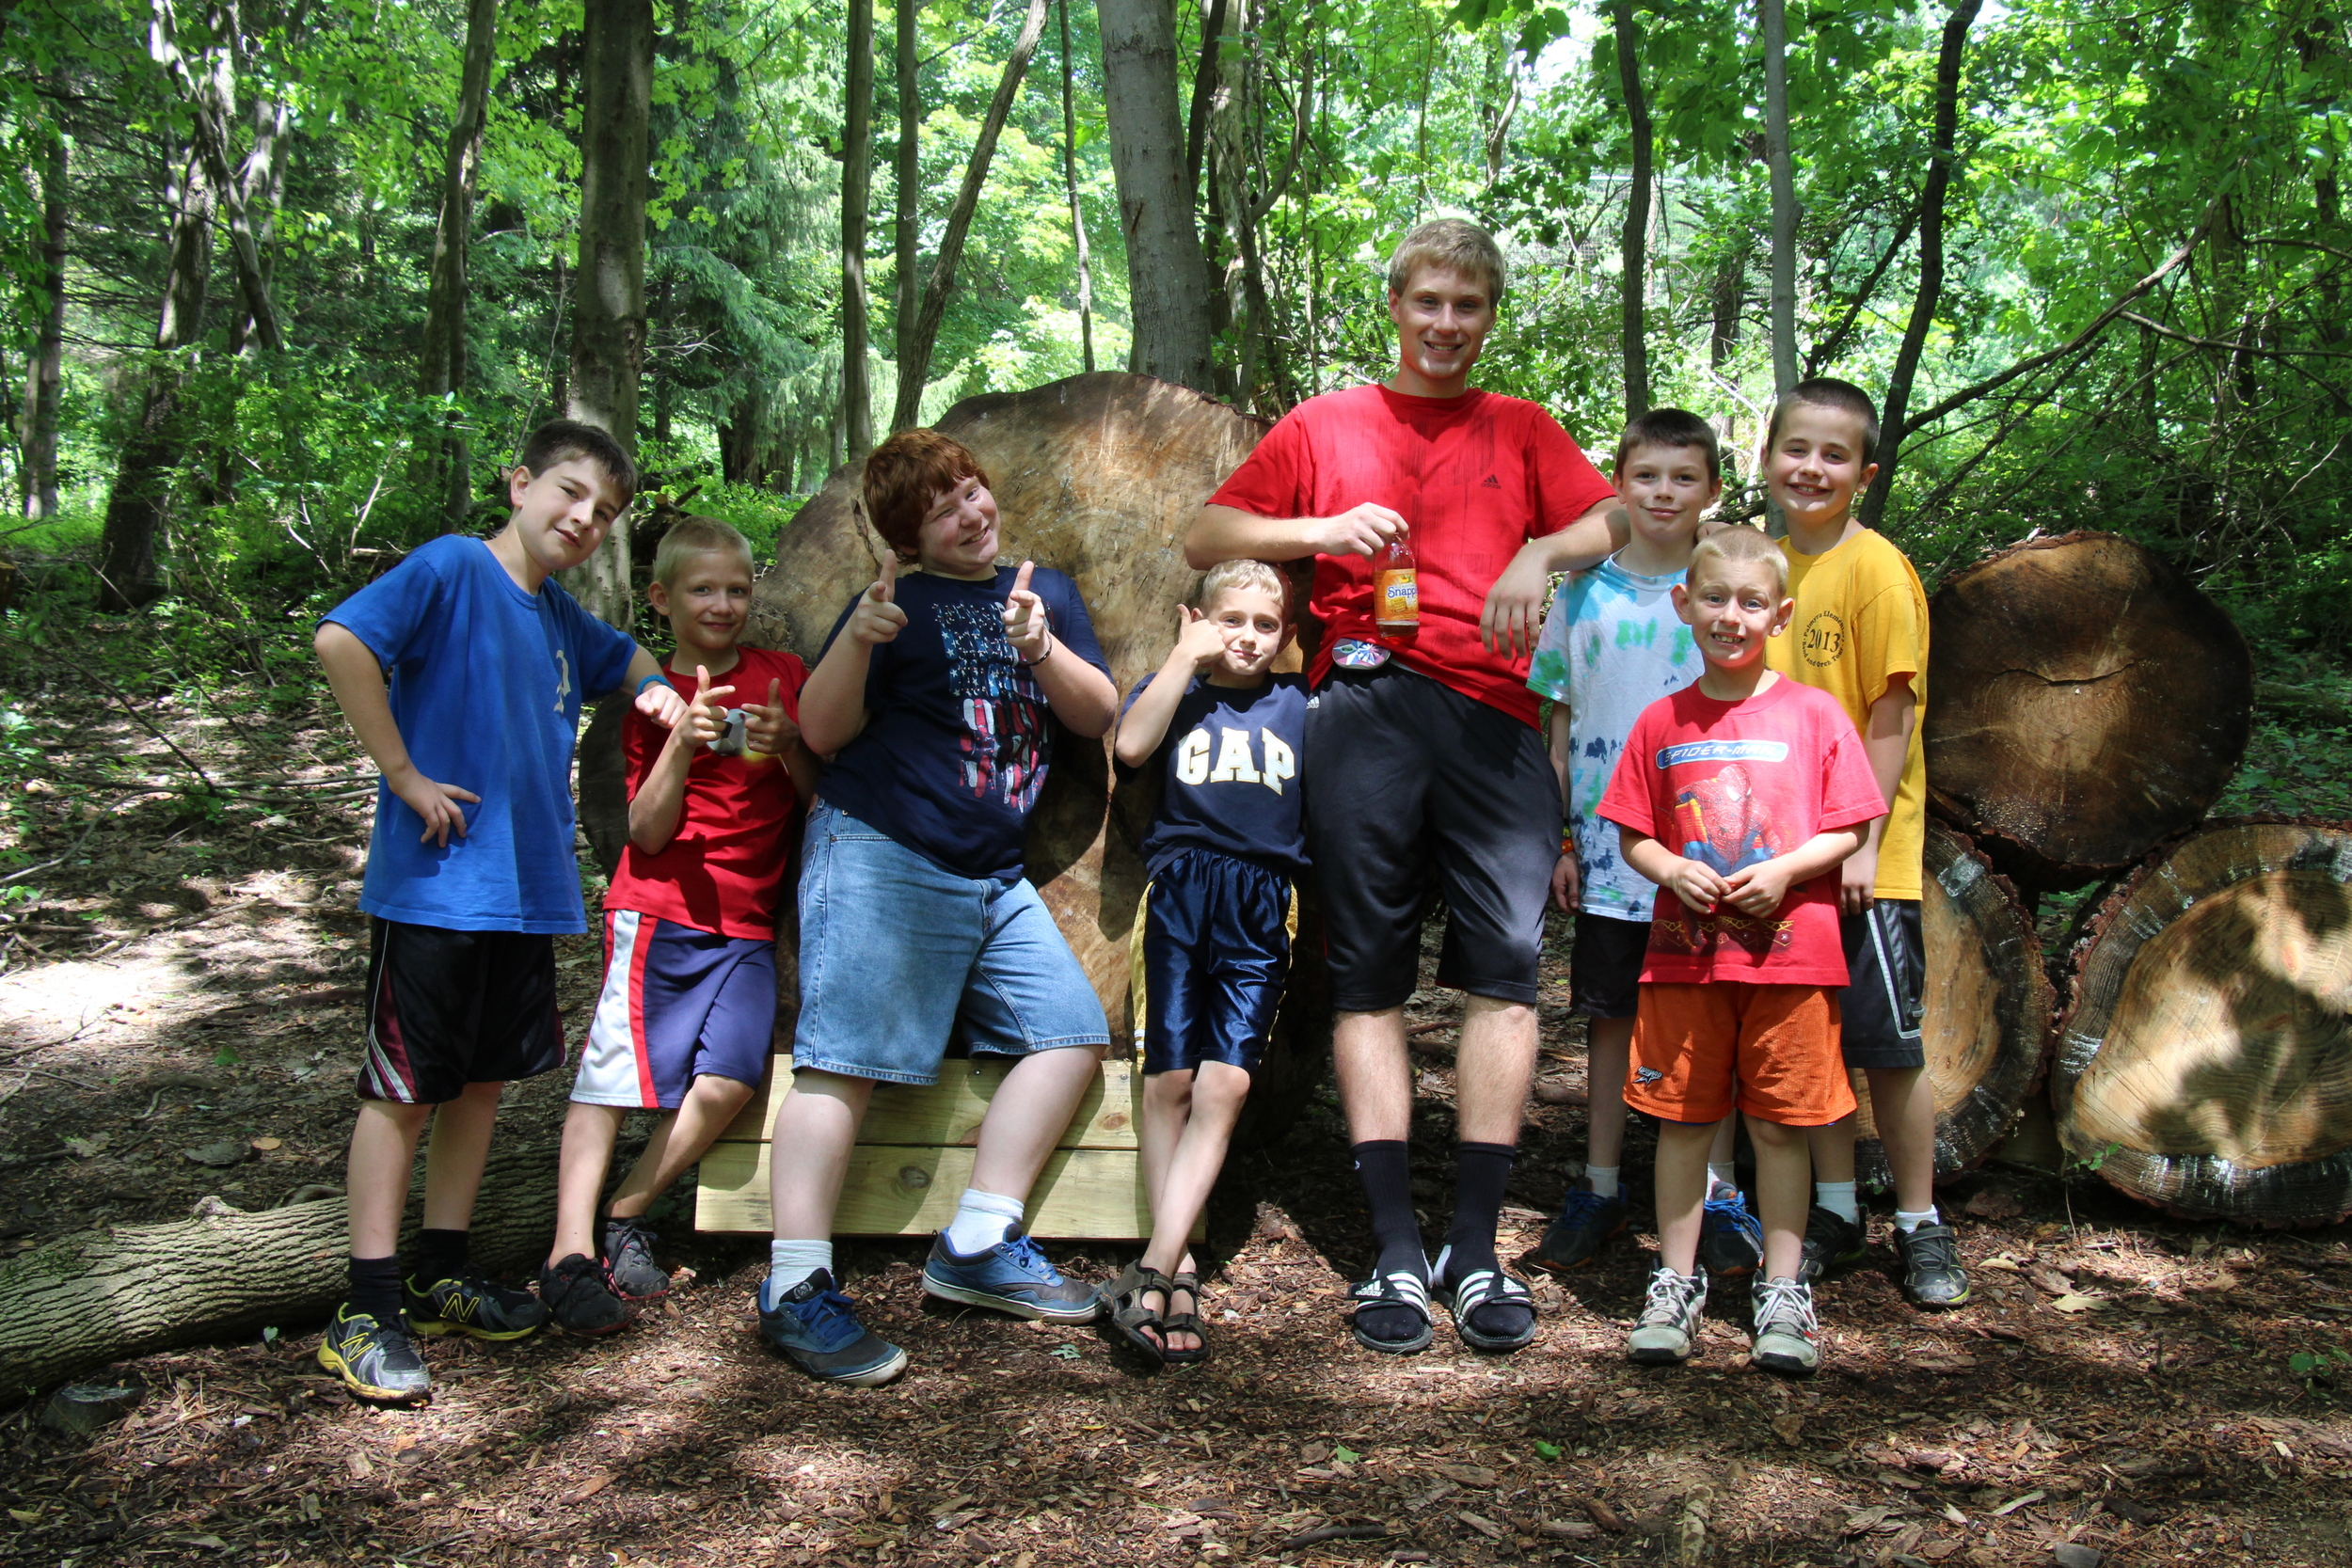 Mt. Lou San Bible Camp is only $290 for a week full of food, fun and learning!